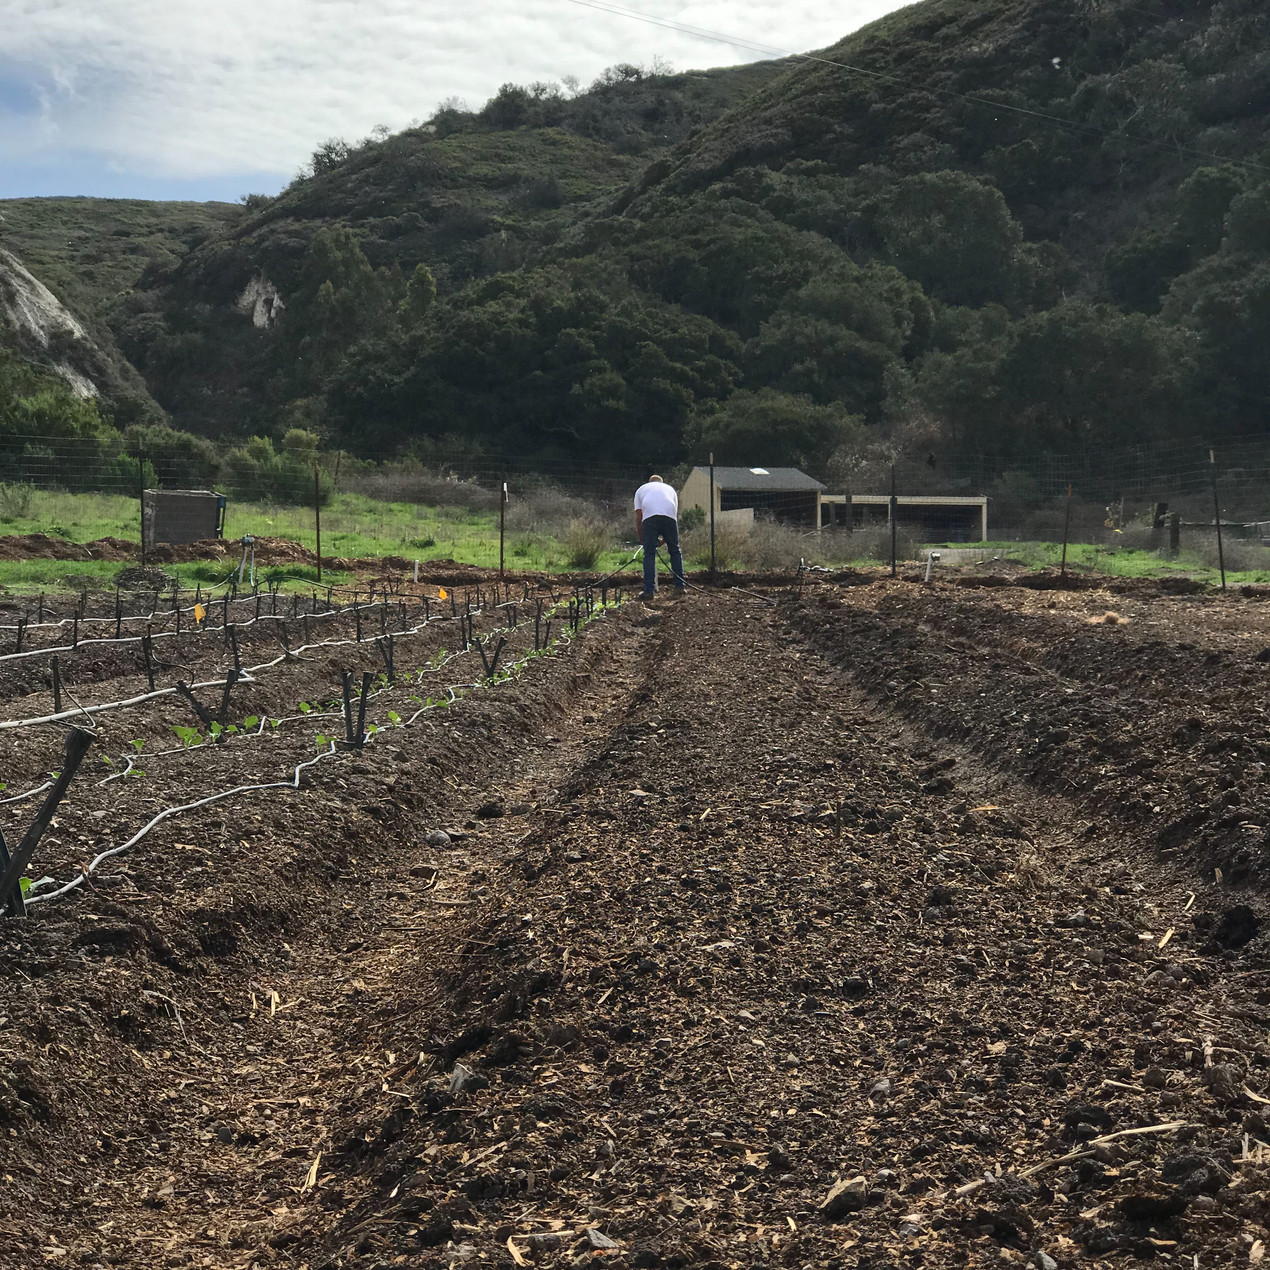 Forming beds with irrigation, crop starts, and compost